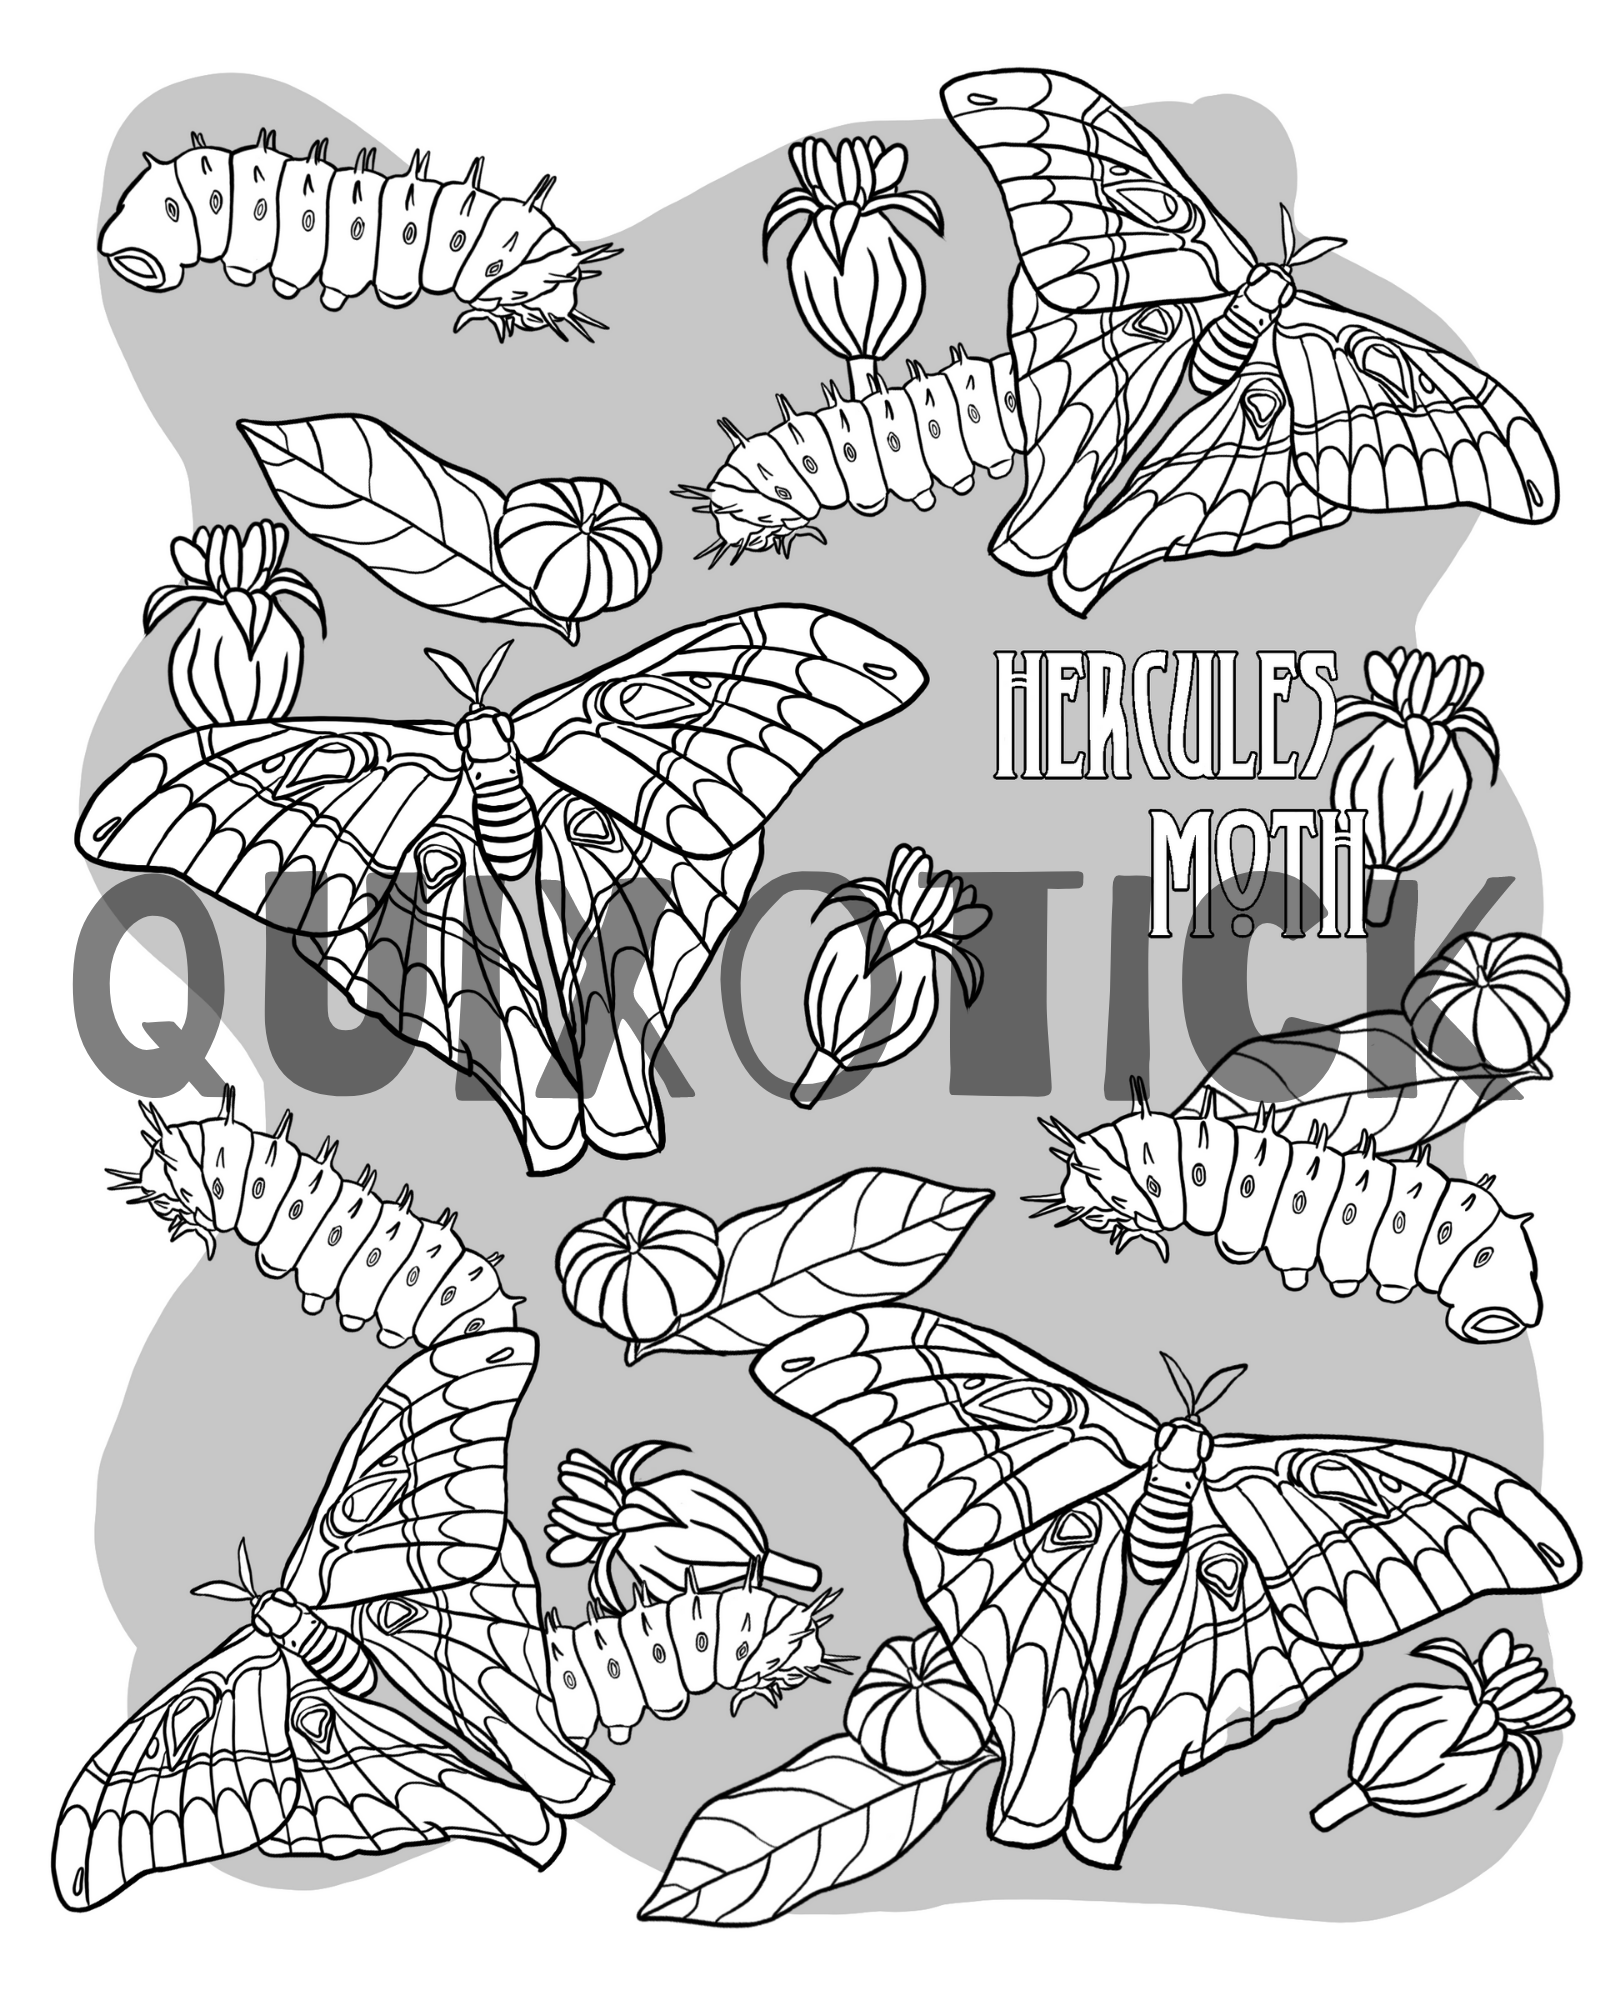 5 Moth Colouring Pages Instant Download Features 5 Moth Designs To Colour Hercules Moth Hercules Moth Colouring Pages Sunset Moth